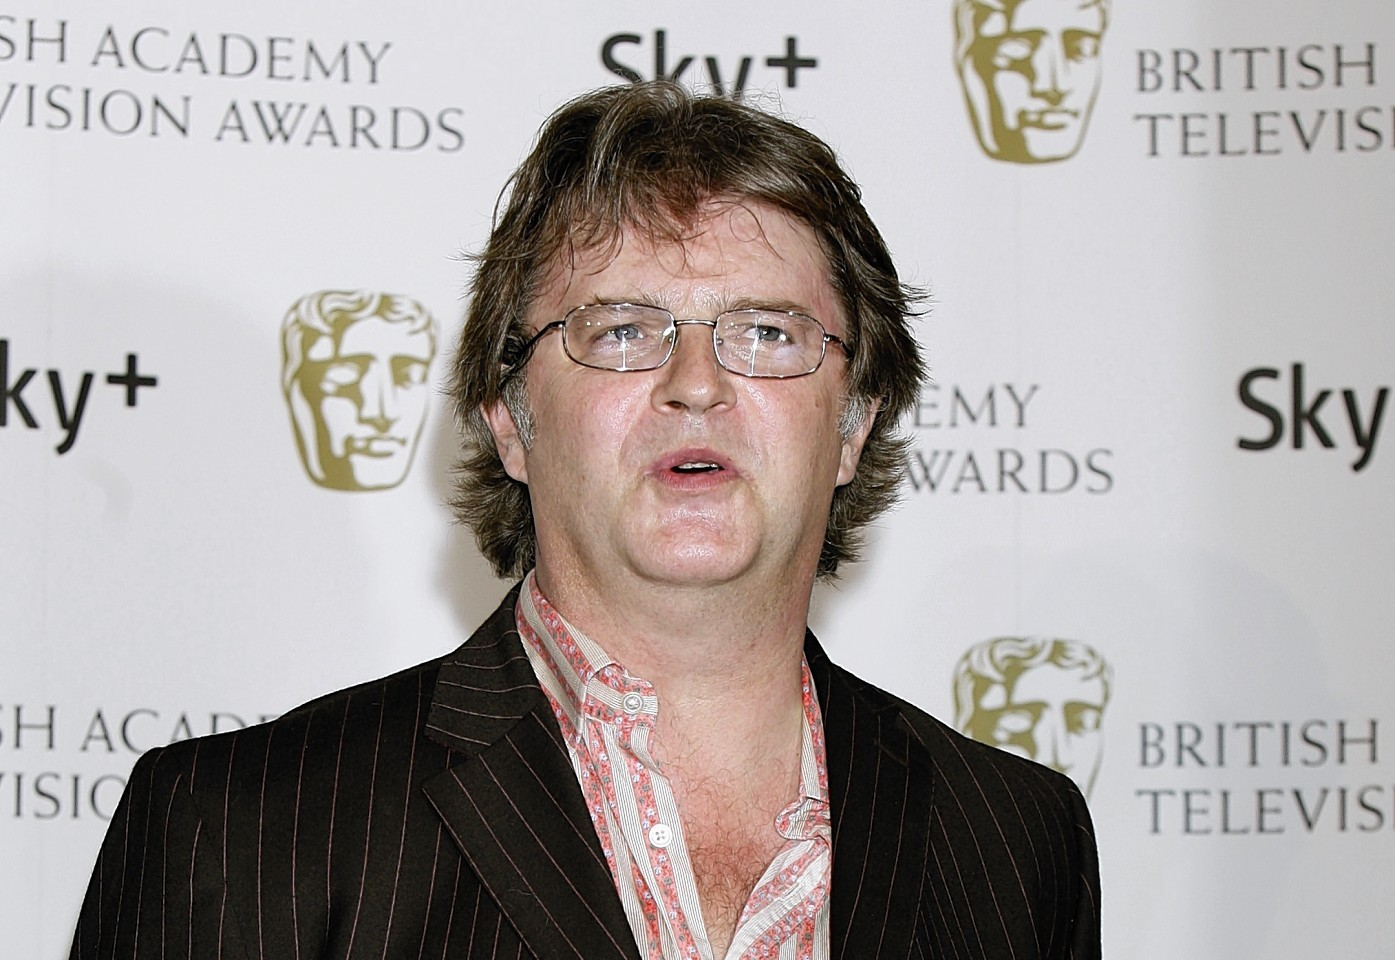 Comedian and broadcaster Paul Merton